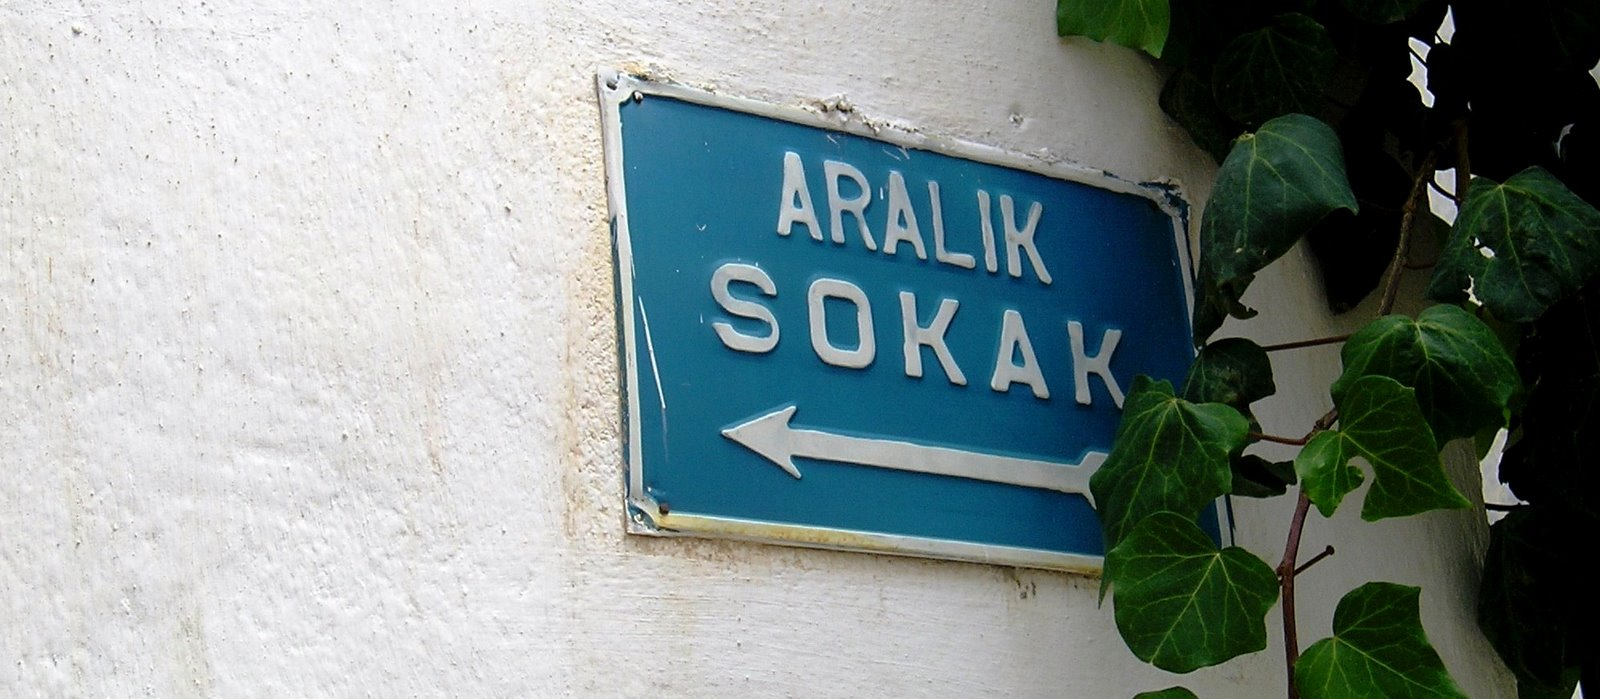 Aralik sokak